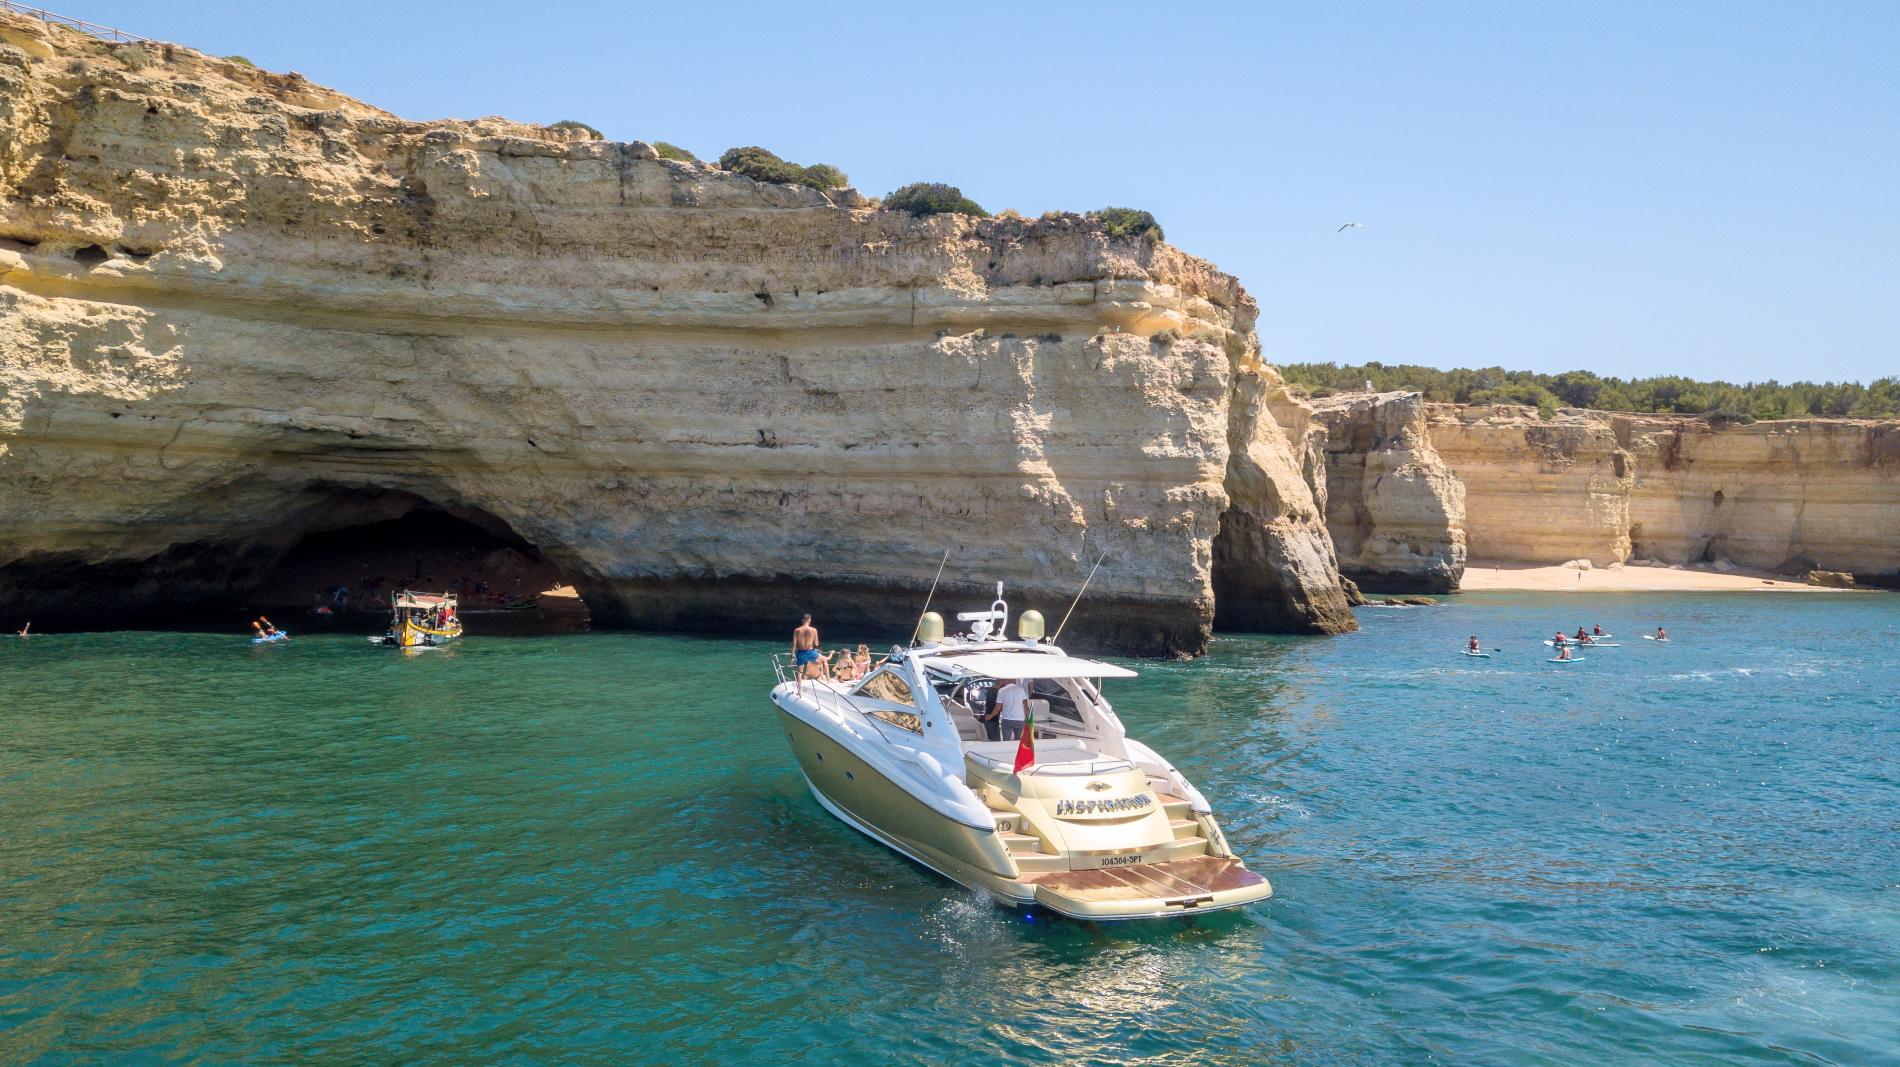 Admire the Algarve from your boat